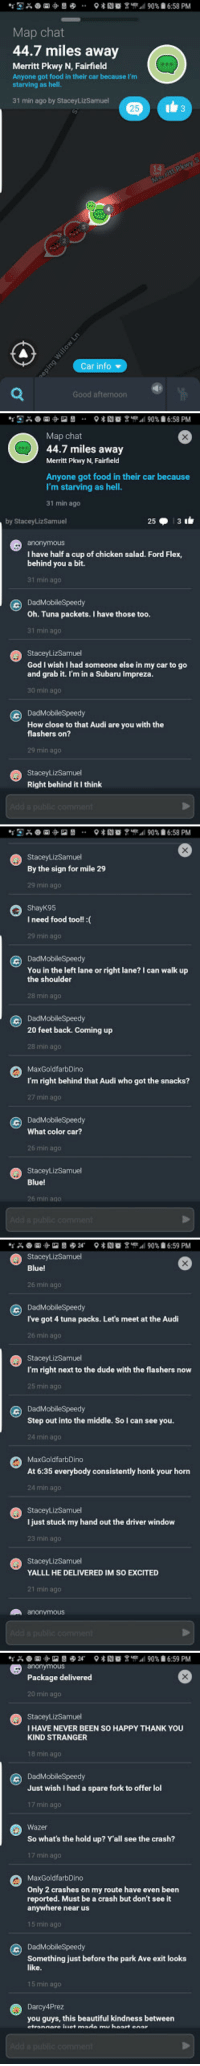 Waze: Bringing Drivers Together: Map chat  44.7 miles away  Merritt Pkwy N, Fairfield  Anyone got food in their car because I'm  starving as hell.  31 min ago by StaceyLizSamuel  25  Car info ▼  Good afternoon   @g愿み  ?塞RIO 윱-.1 90%自6:58 PM  ..  Map chat  44.7 miles away  Merritt Pkwy N, Fairfield  Anyone got food in their car because  I'm starving as hell.  31 min ago  by StaceyLizSamuel  anonymous  I have half a cup of chicken salad. Ford Flex,  behind you a bit.  31 min ago  DadMobileSpeedy  Oh. Tuna packets. I have those too.  31 min ago  StaceyLizSamuel  God I wish I had someone else in my car to go  and grab it. I'm in a Subaru Impreza.  30 min ago  cDadMobileSpeedy  How close to that Audi are you with the  flashers on?  29 min ago  StaceyLizSamuel  Right behind it I think   StaceyLizSamuel  By the sign for mile 29  29 min ago  ShayK95  I need food too!!  29 min ago  G DadMobileSpeedy  You in the left lane or right lane? I can walk up  the shoulder  28 min ago  DadMobileSpeedy  20 feet back. Coming up  28 min ago  MaxGoldfarbDino  I'm right behind that Audi who got the snacks?  27 min ago  G DadMobilespeedy  What color car?  26 min ago  StaceyLizSamuel  Blue!  26 min ago   StaceyLizSamuel  Blue!  26 min ago  ⓒ DadMobileSpeedy  I've got 4 tuna packs. Let's meet at the Audi  26 min ago  StaceyLizSamuel  I'm right next to the dude with the flashers now  25 min ago  DadMobileSpeedy  Step out into the middle. So I can see you.  24 min ago  MaxGoldfarbDino  At 6:35 everybody consistently honk your horn  24 min ago  StaceyLizSamuel  I just stuck my hand out the driver window  23 min ago  StaceyLizSamuel  YALLL HE DELIVERED IM SO EXCITED  21 min ago  anonymous   anonymous  Package delivered  20 min ago  StaceyLizSamuel  IHAVE NEVER BEEN SO HAPPY THANK YOU  KIND STRANGER  18 min ago  DadMobileSpeedy  Just wish I had a spare fork to offer lol  17 min ago  Wazer  So what's the hold up? Y'all see the crash?  17 min ago  MaxGoldfarbDino  Only 2 crashes on my route have eve